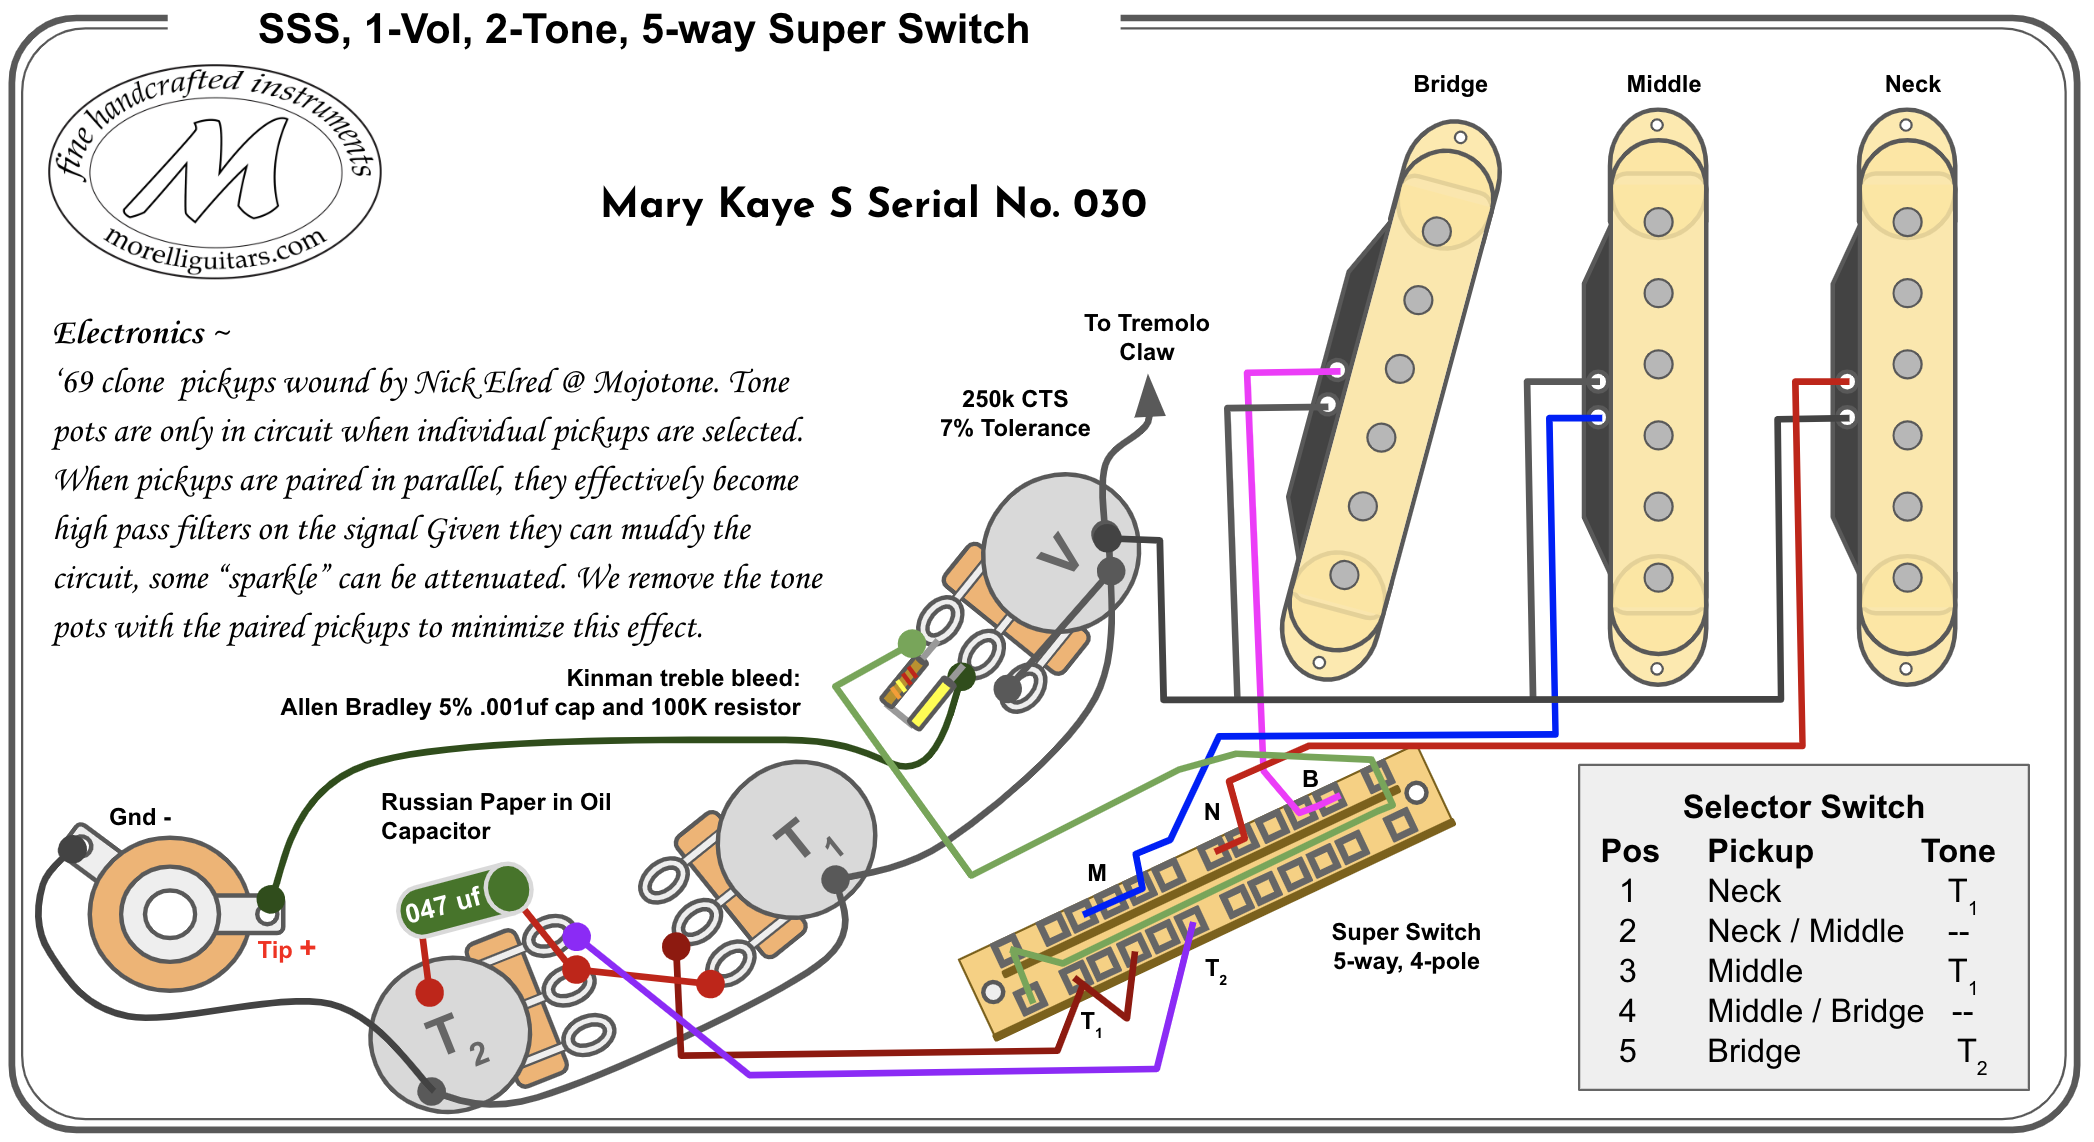 wiring diagram centre on sss, 1-vol, 2-tone, 5-way super switch